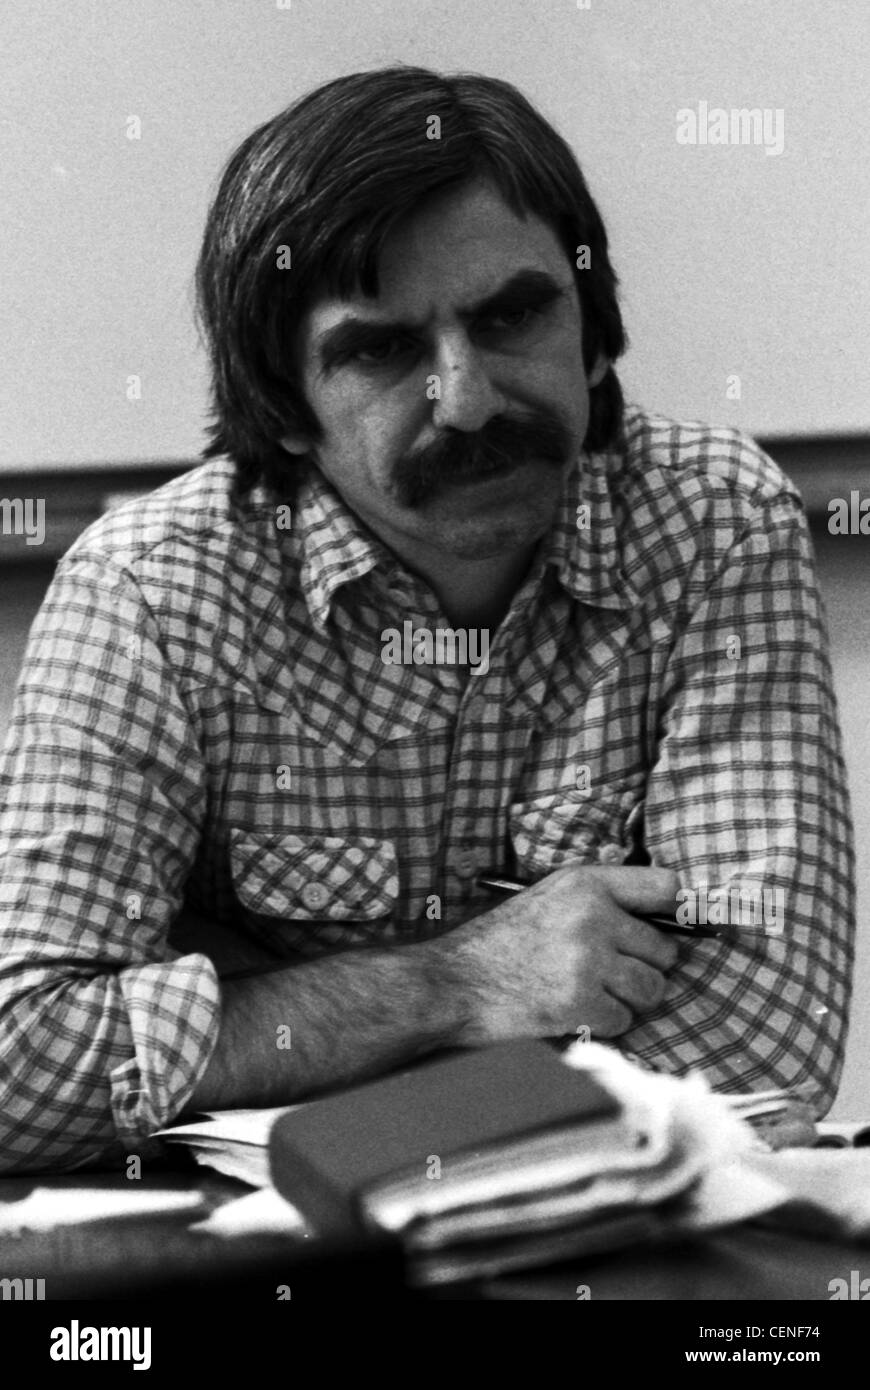 Rudi Dutschke - * 07.03.1940 - 24.12.1979: Portrait of the Berlin student leader and politician at a press conference. Stock Photo